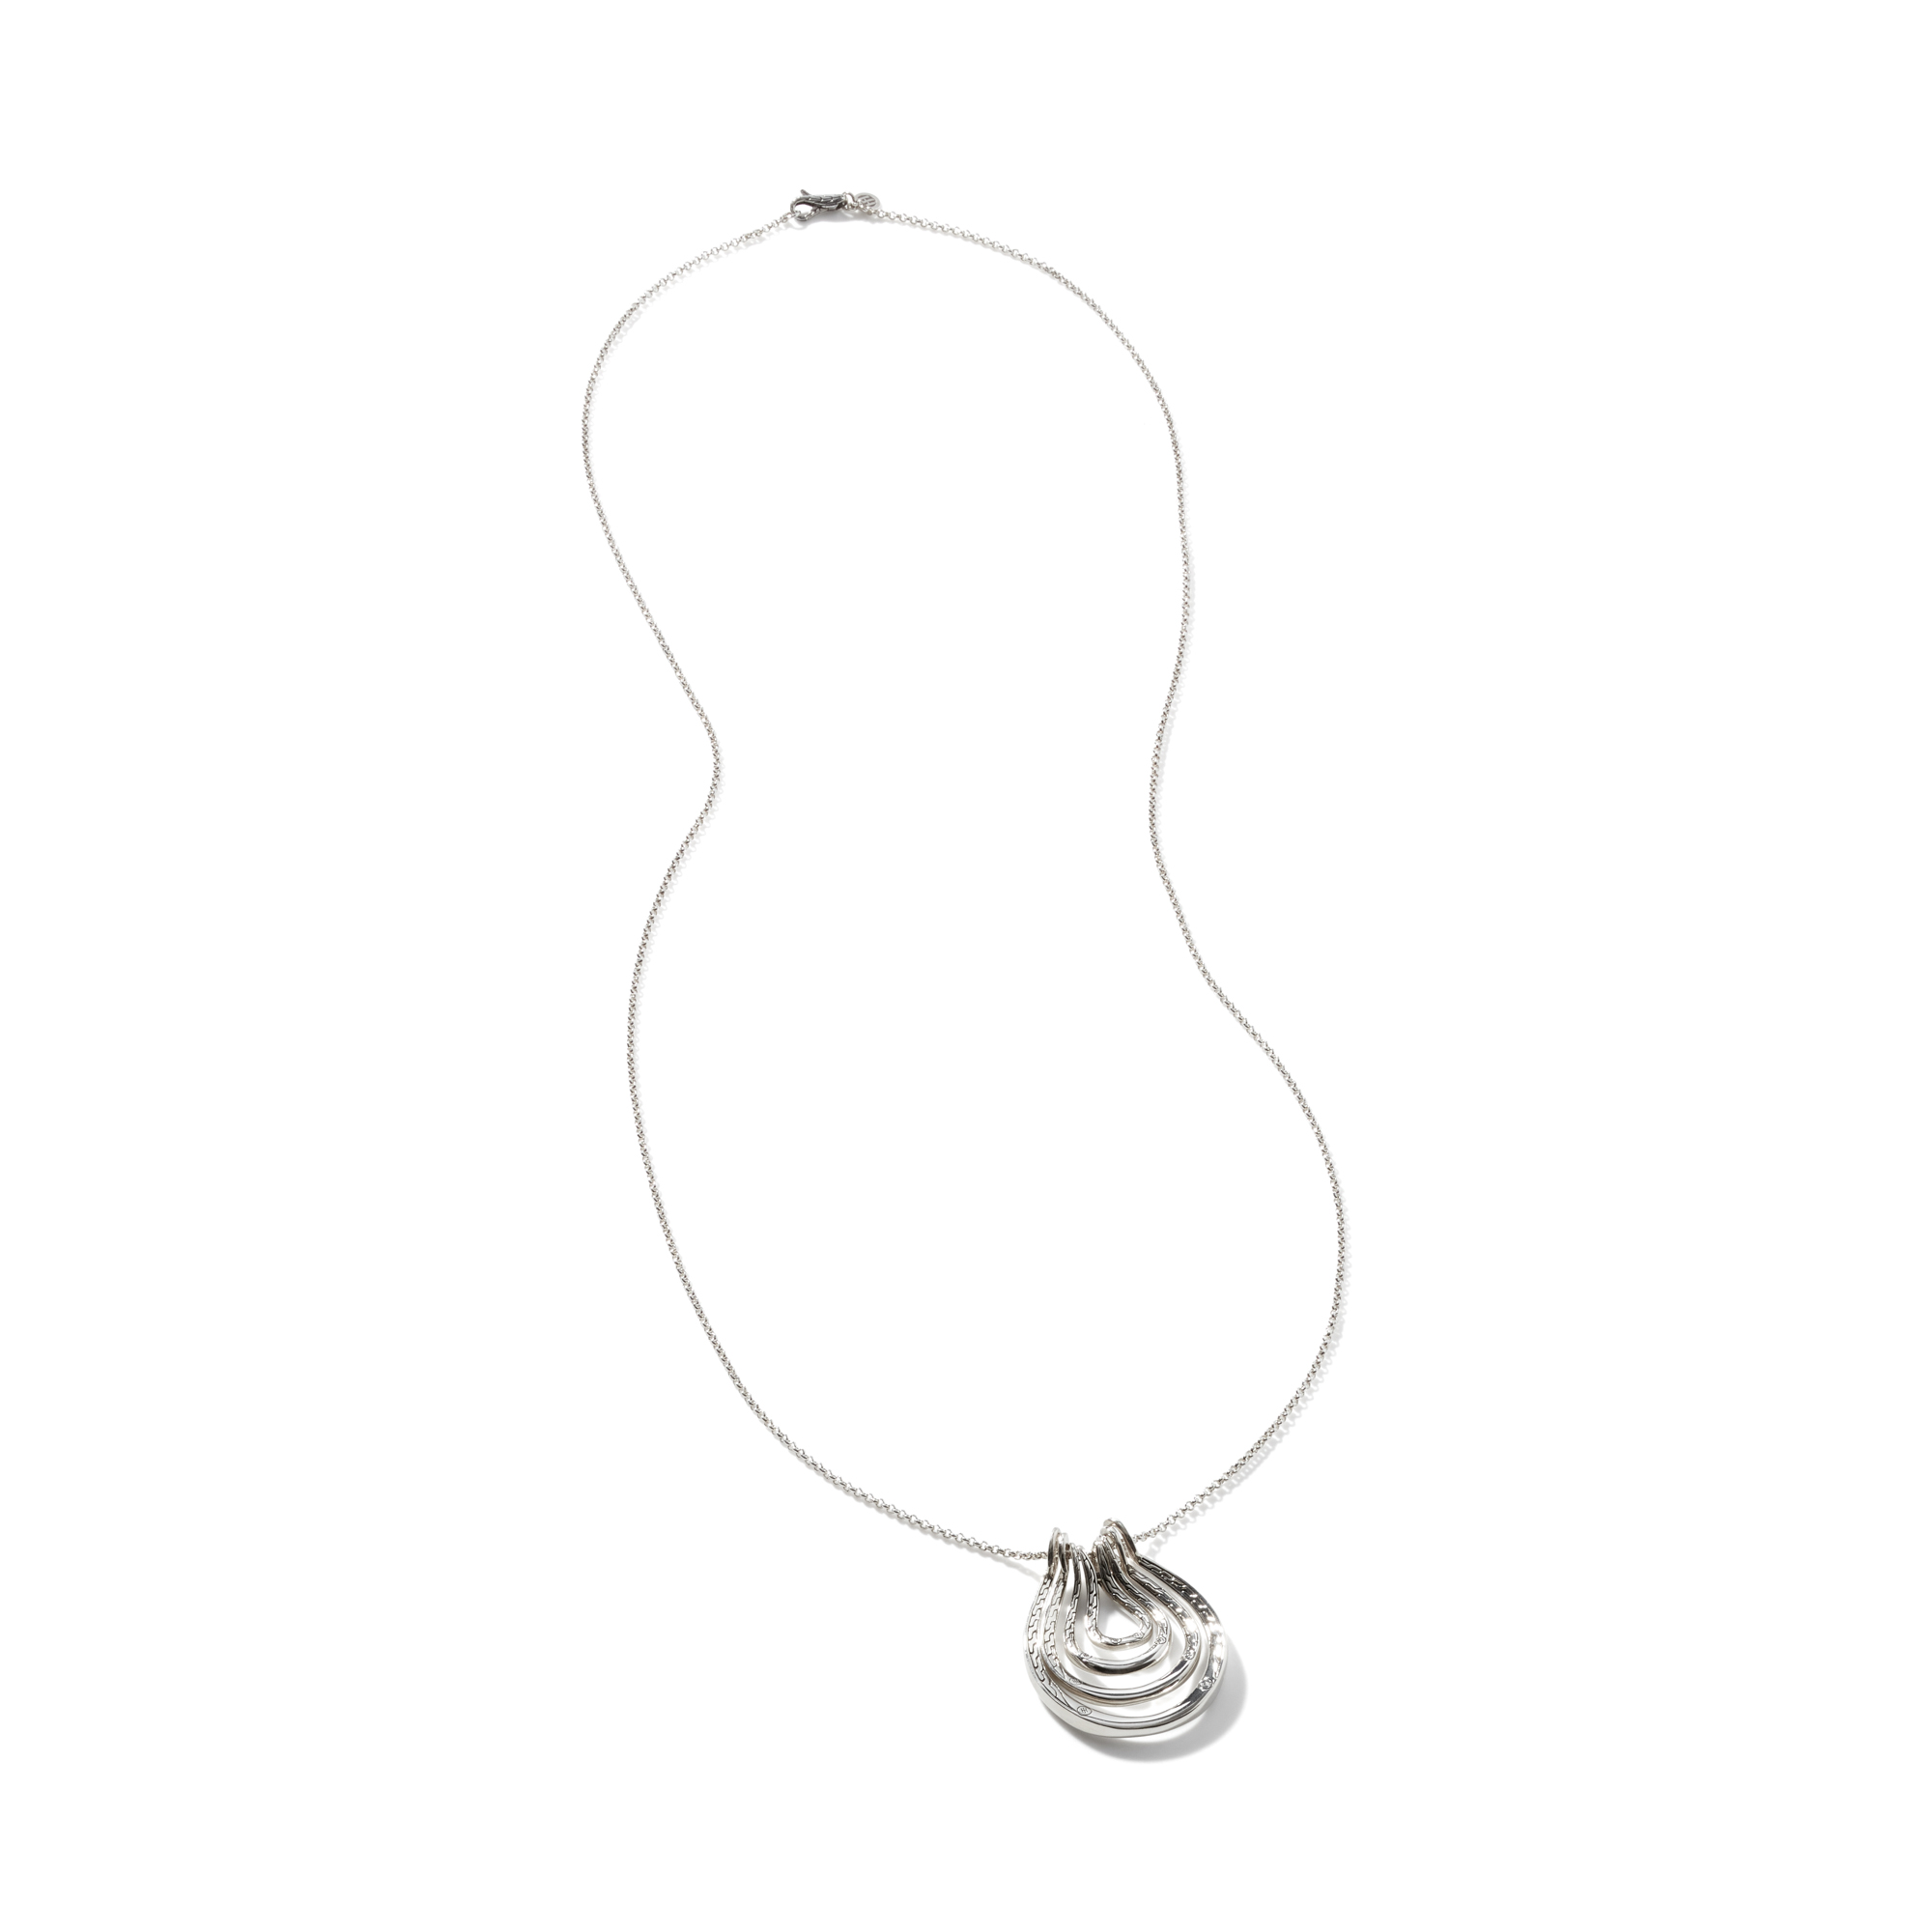 Asli Classic Chain Link Pendant Necklace in Silver, , large